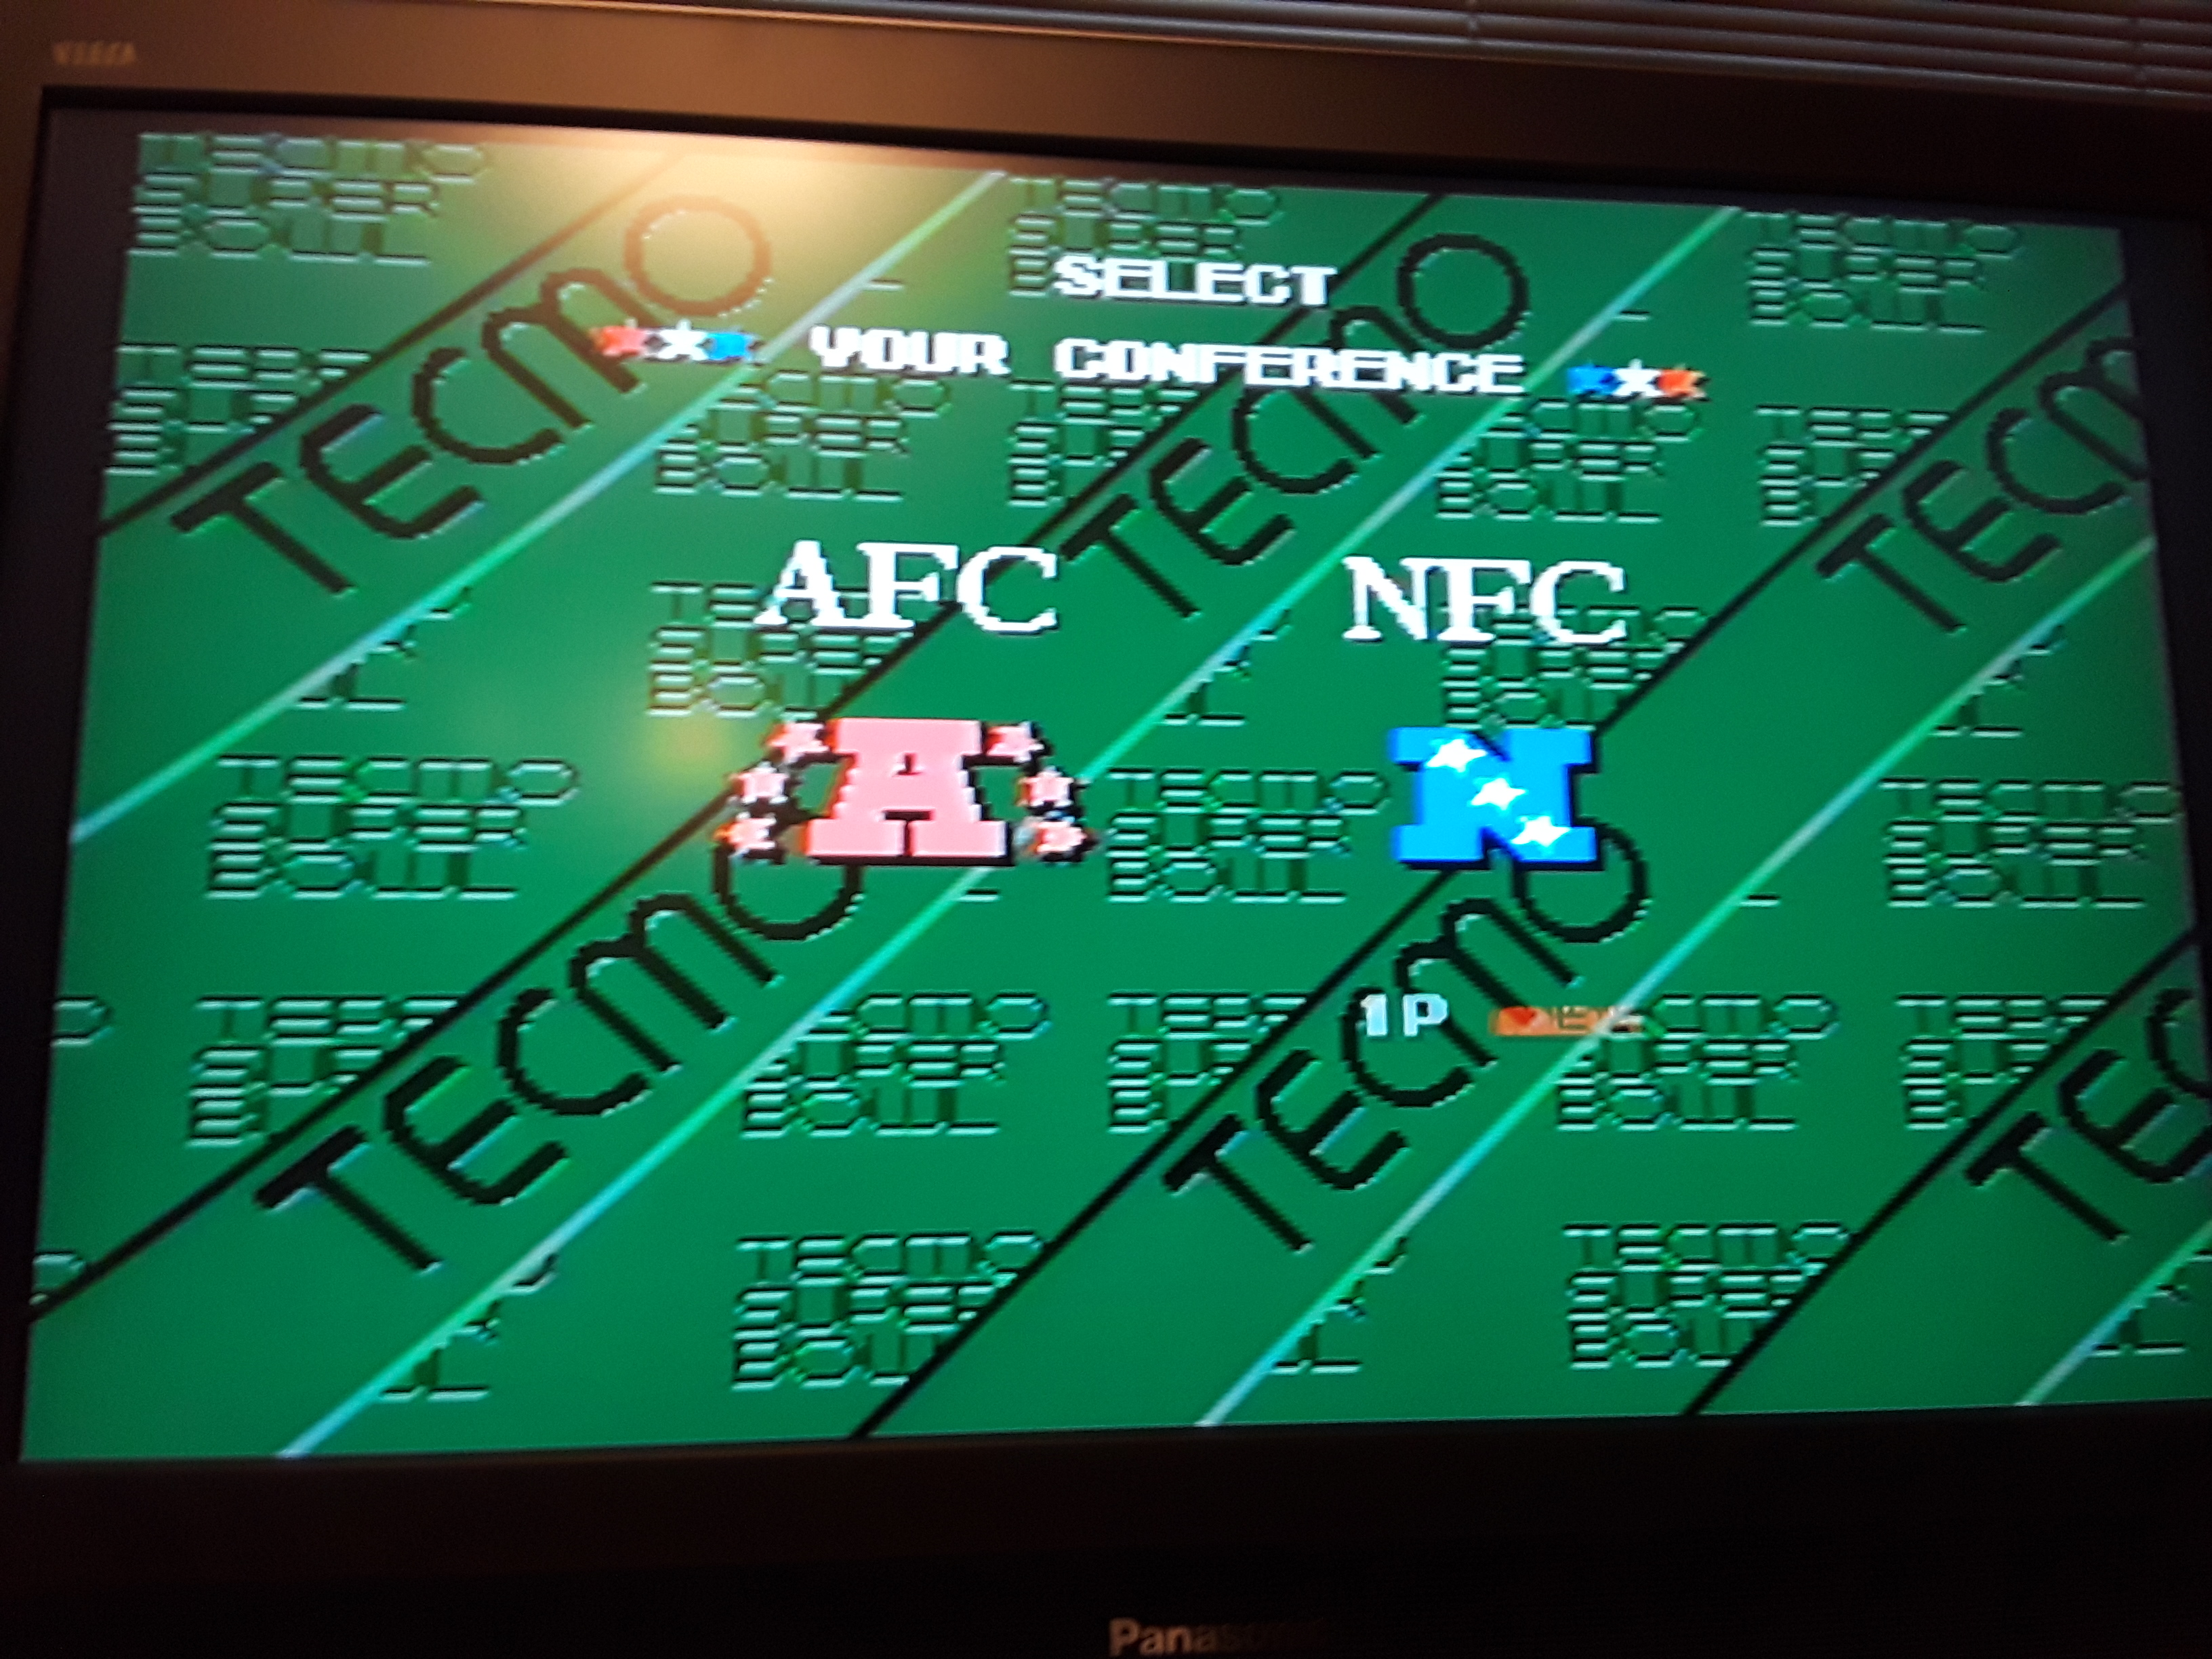 Tecmo Super Bowl [Point Differential] [Pro Bowl] 61 points